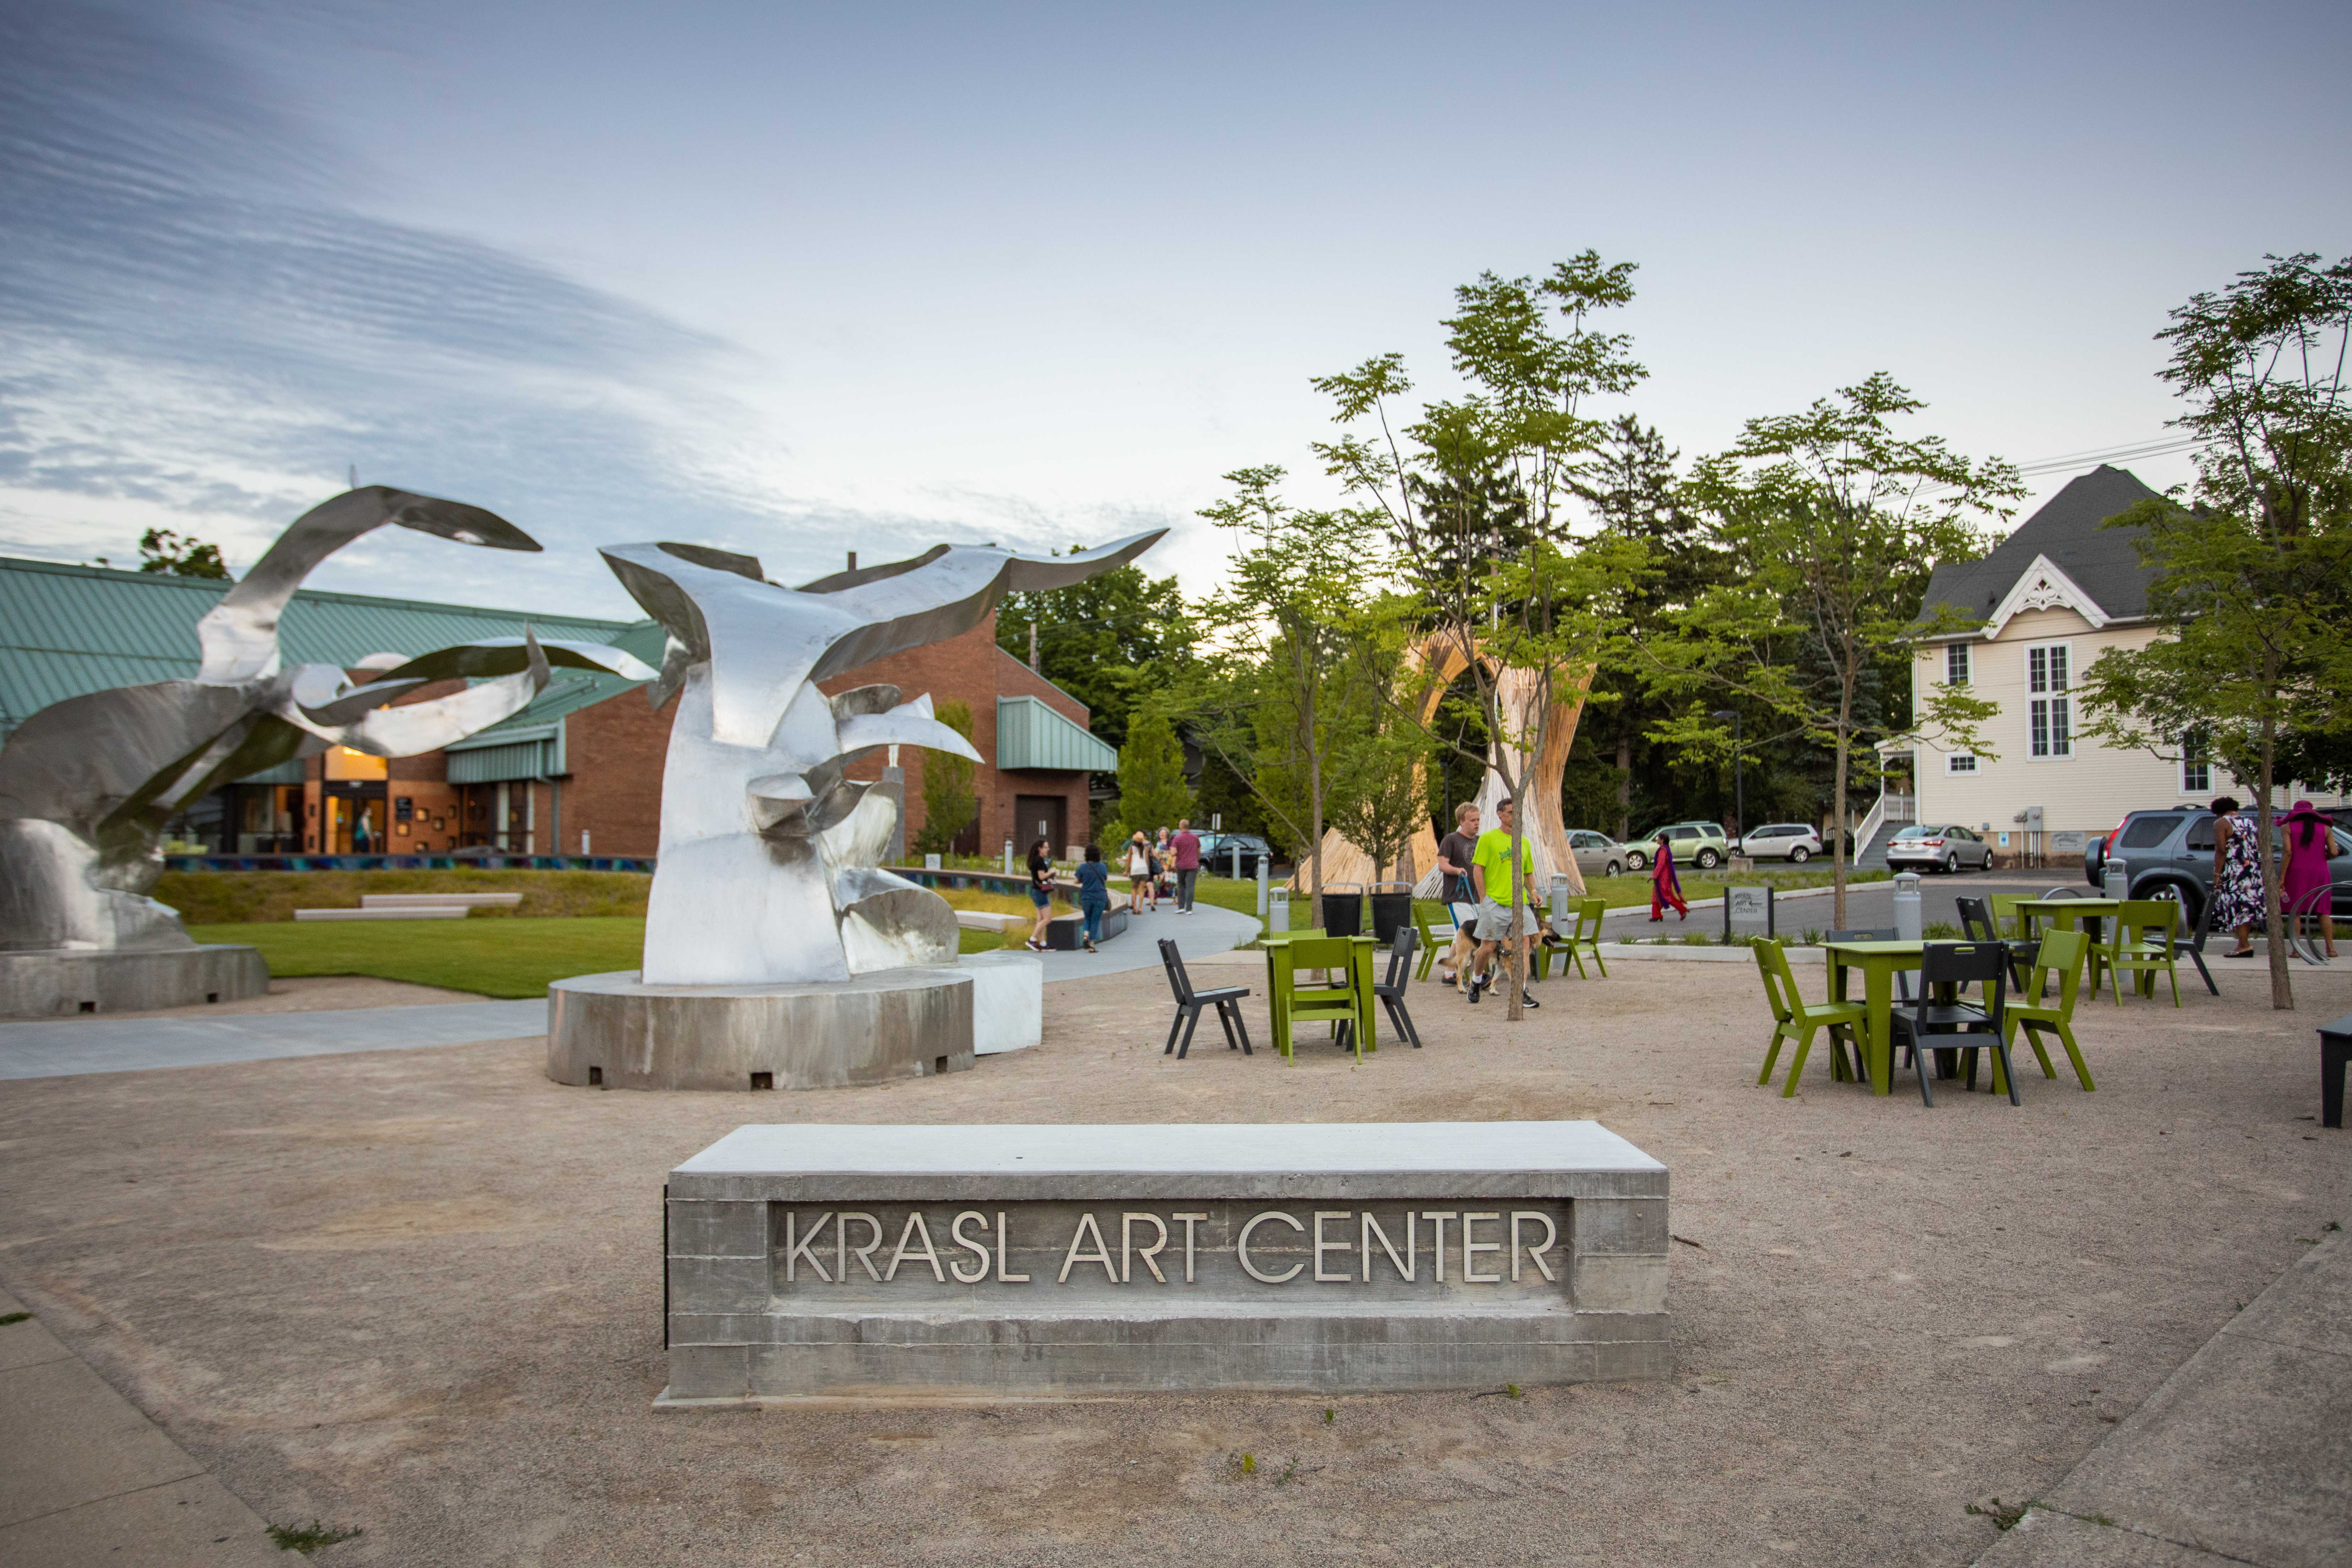 2019 KRASL ART CENTER MEMBERS' SHOW